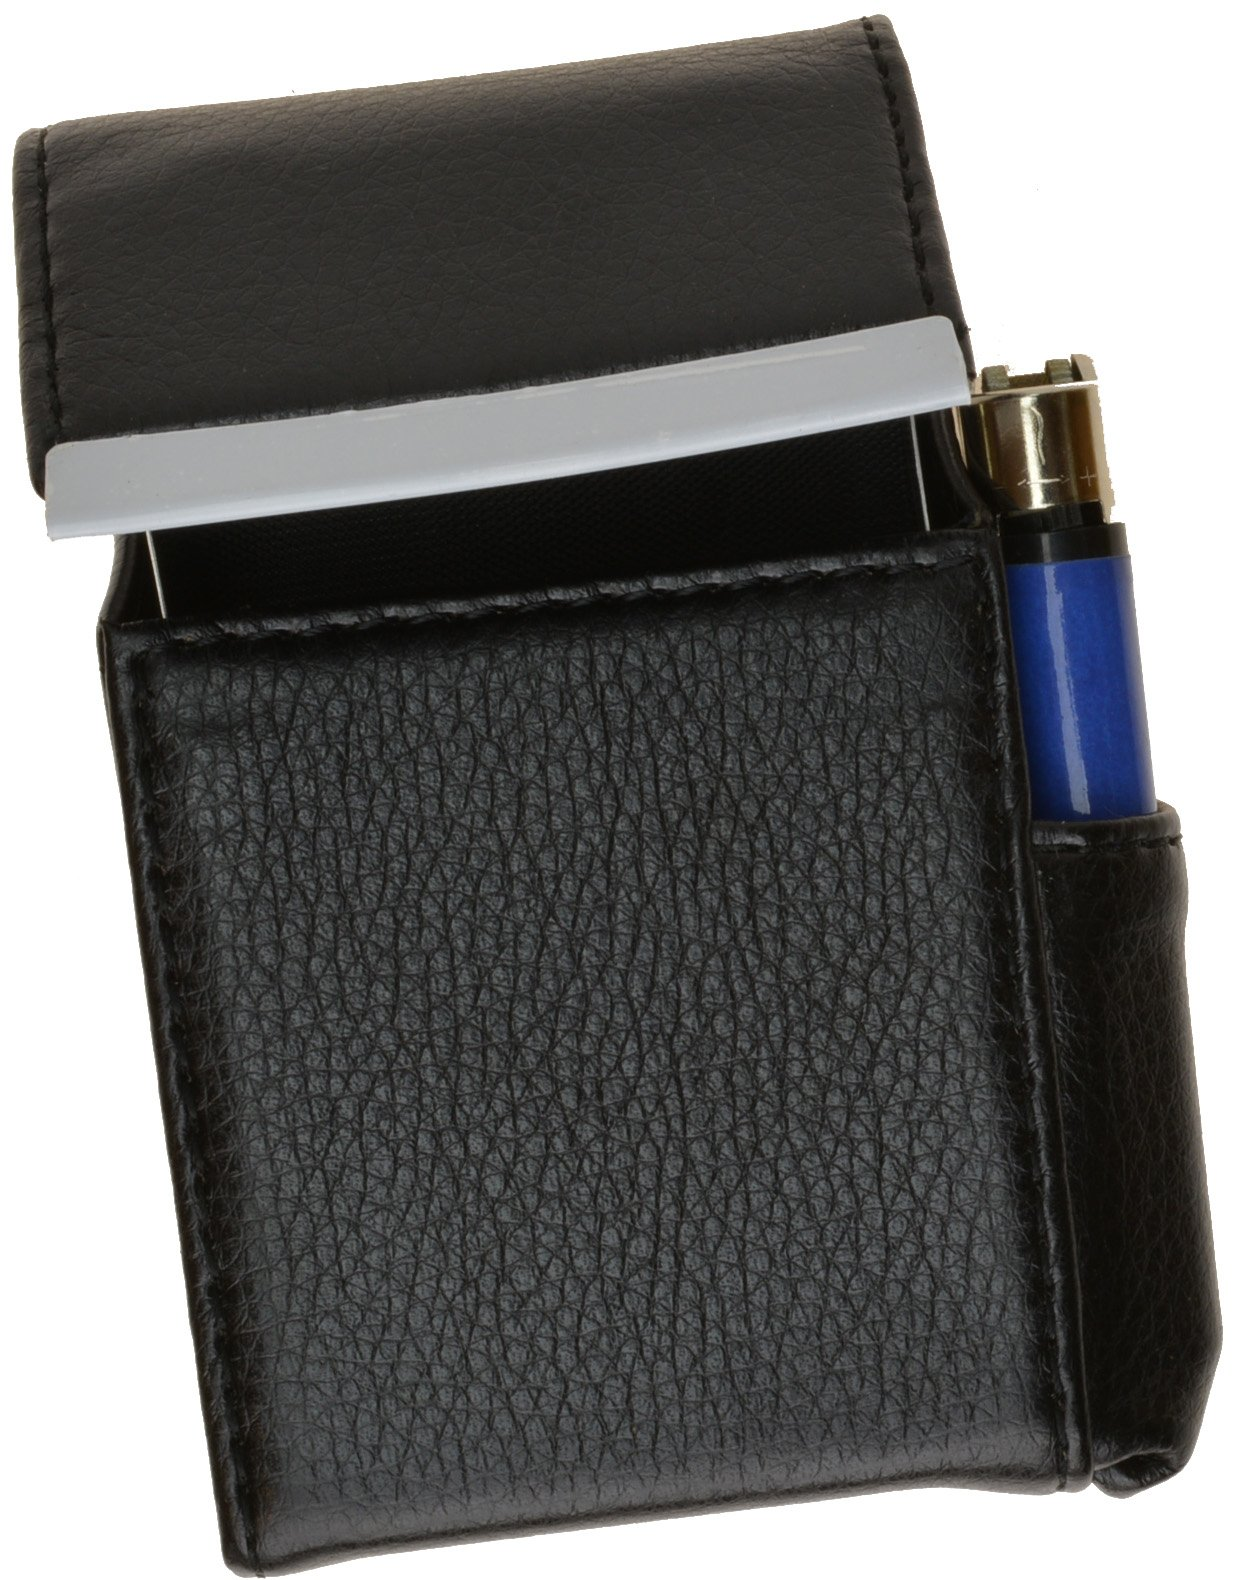 Automatic Rising Cigarette Case with Lighter Holder (For King Size & 100's)#92812